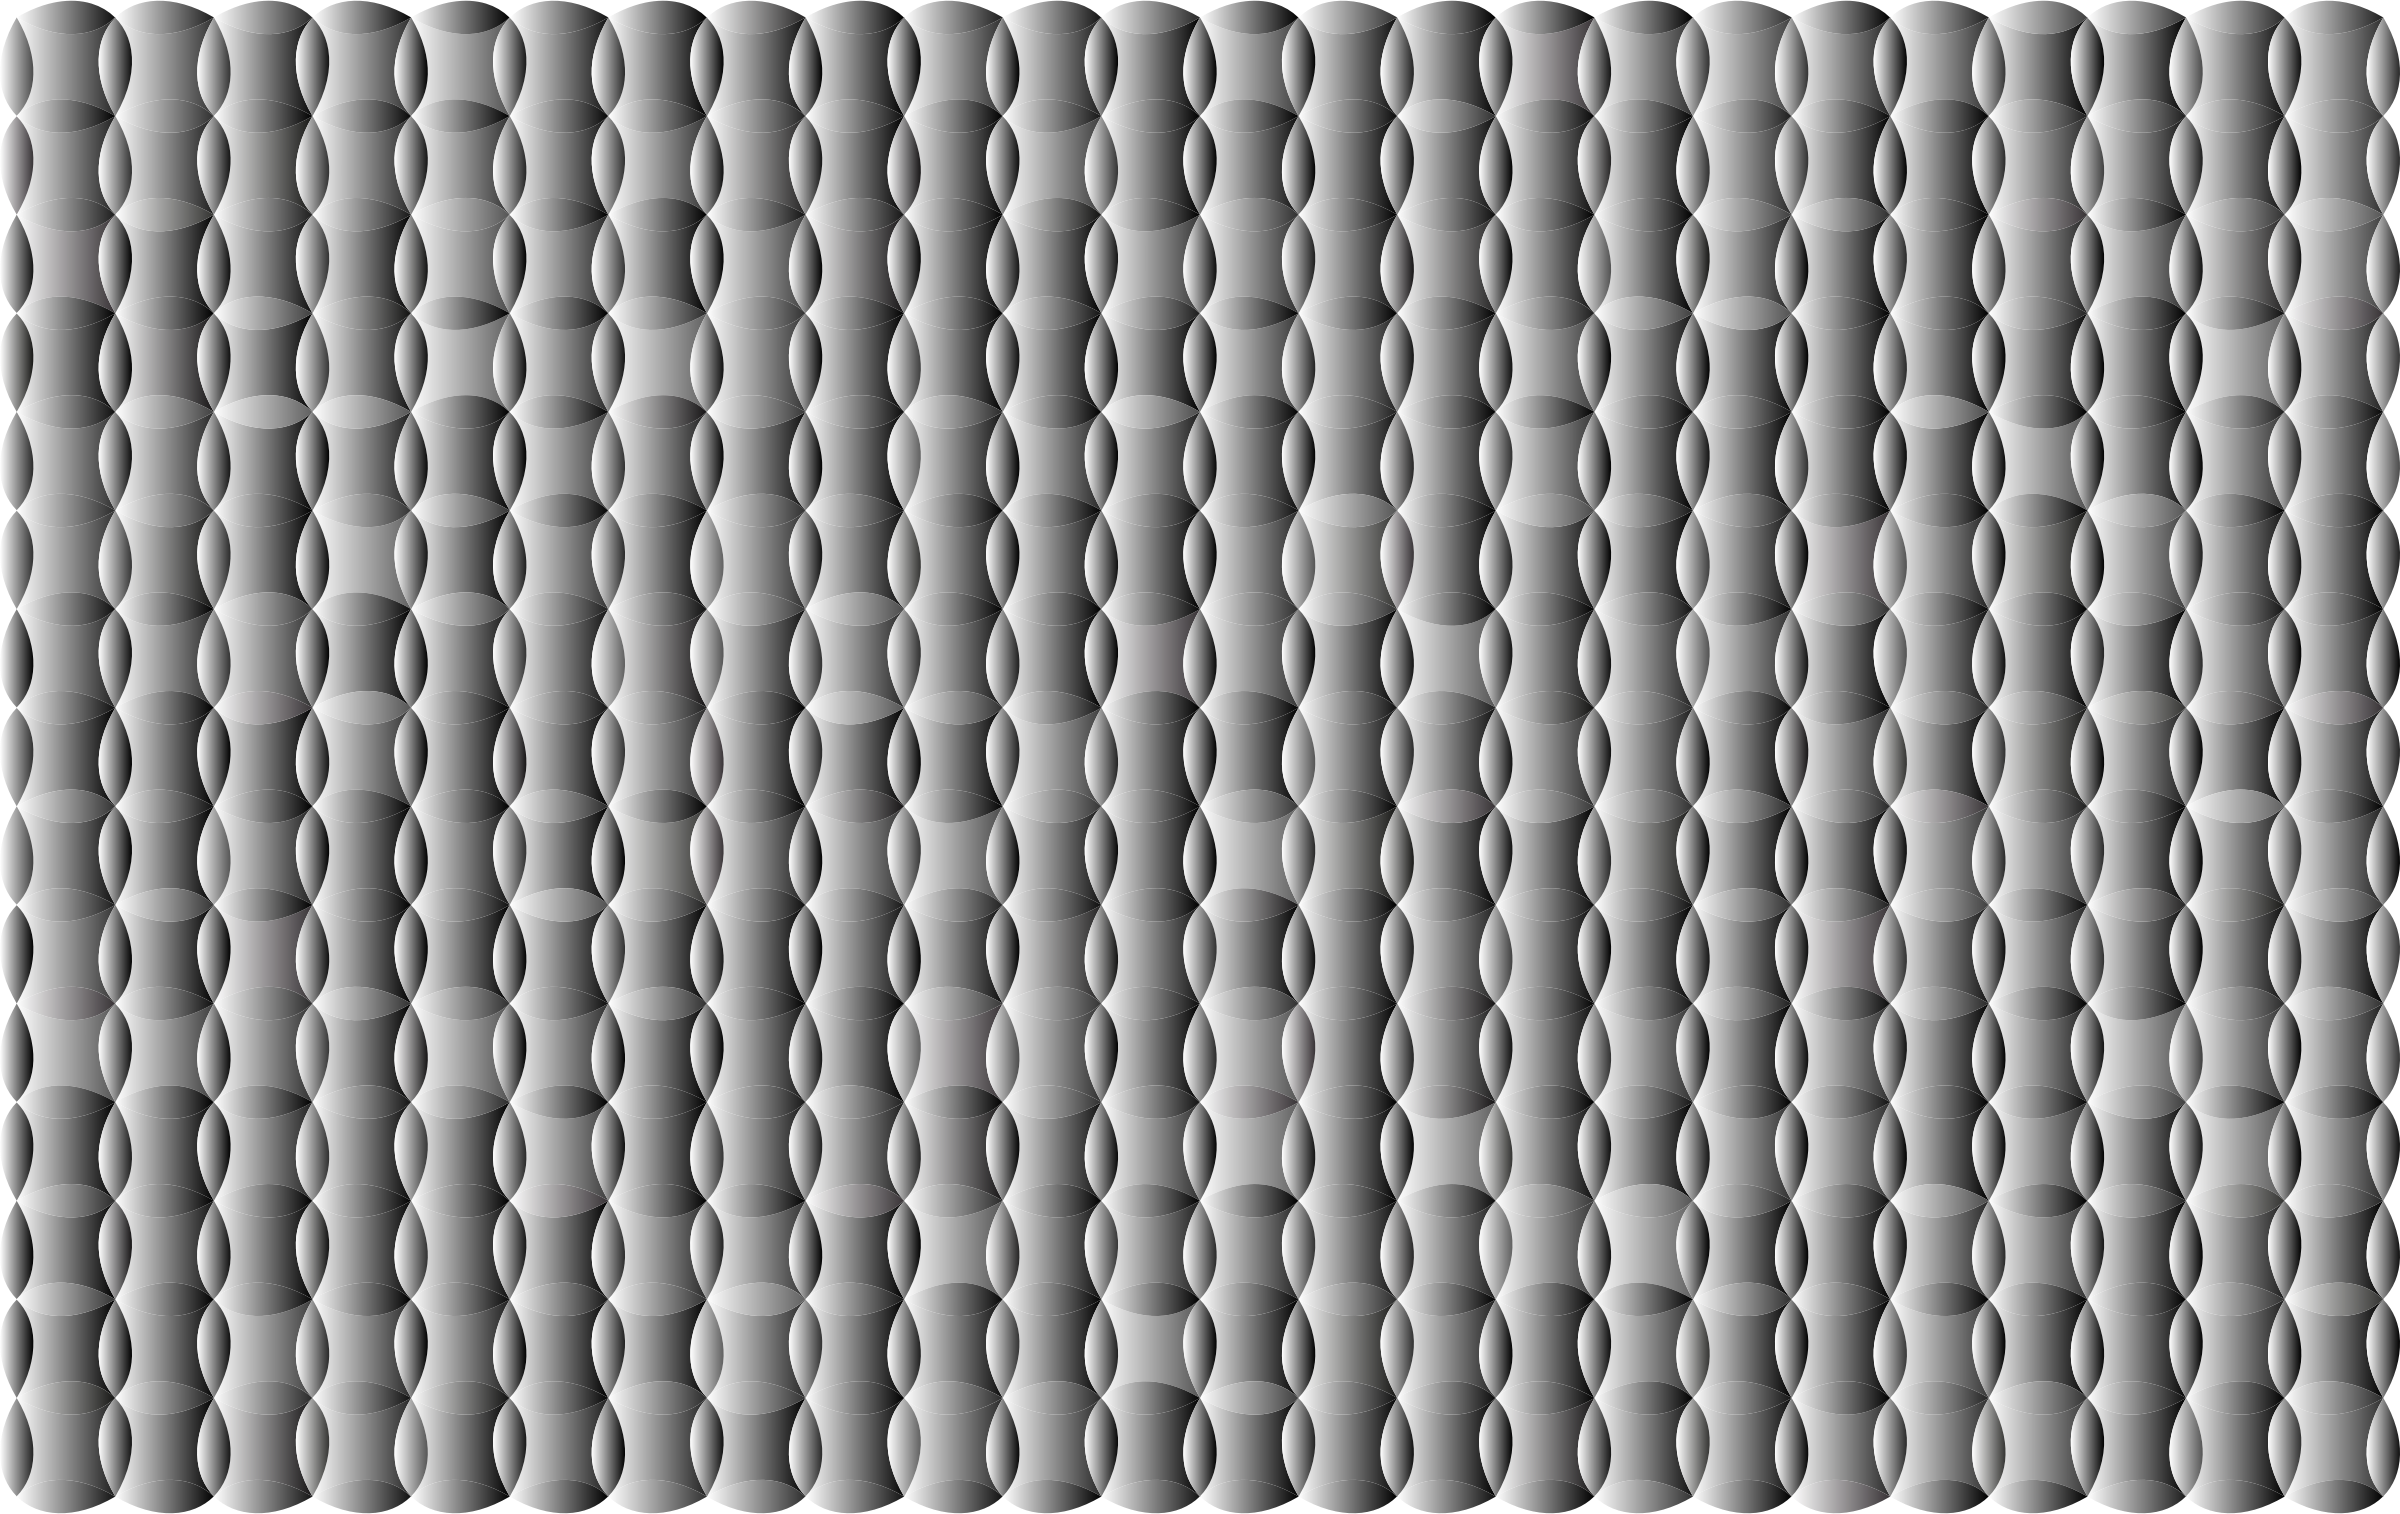 Grayscale Basic Pattern 2 by GDJ